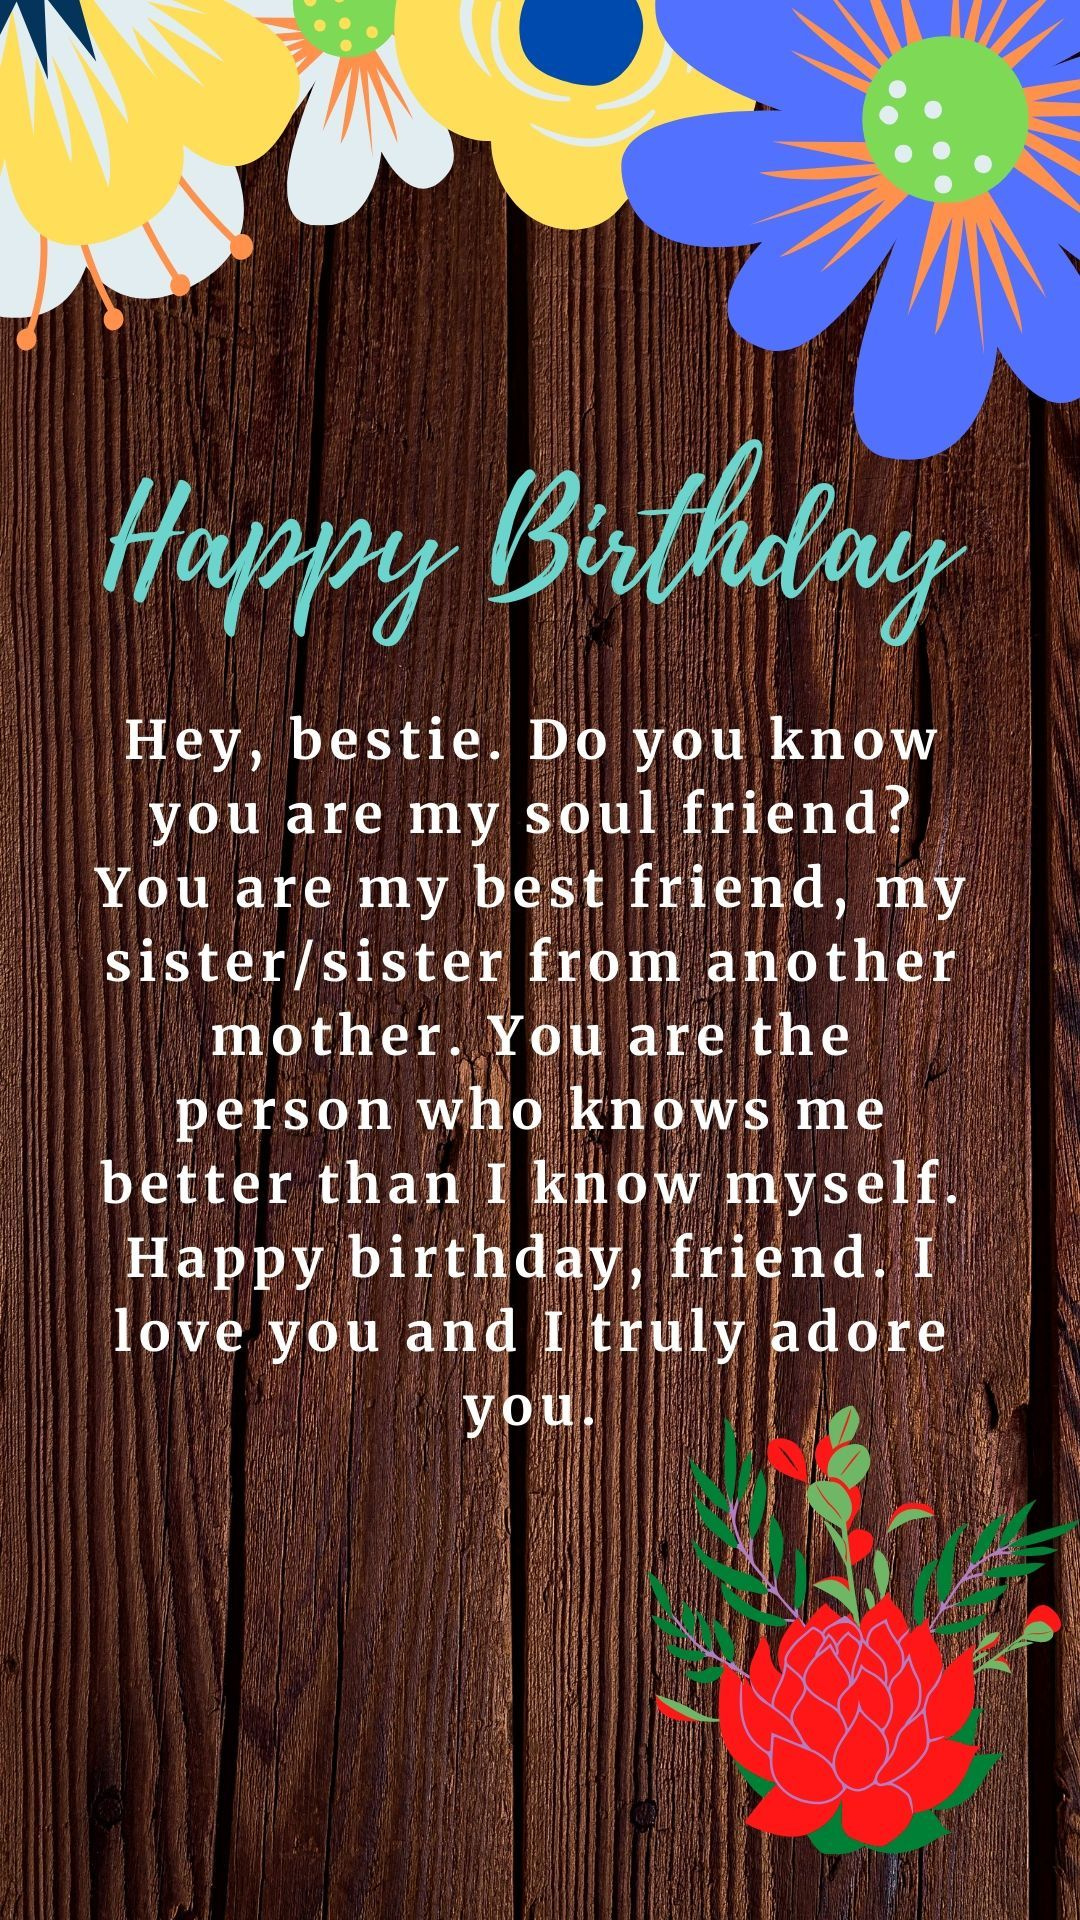 Happy Birthday to a True Bestie in 2020 | Birthday wishes ...